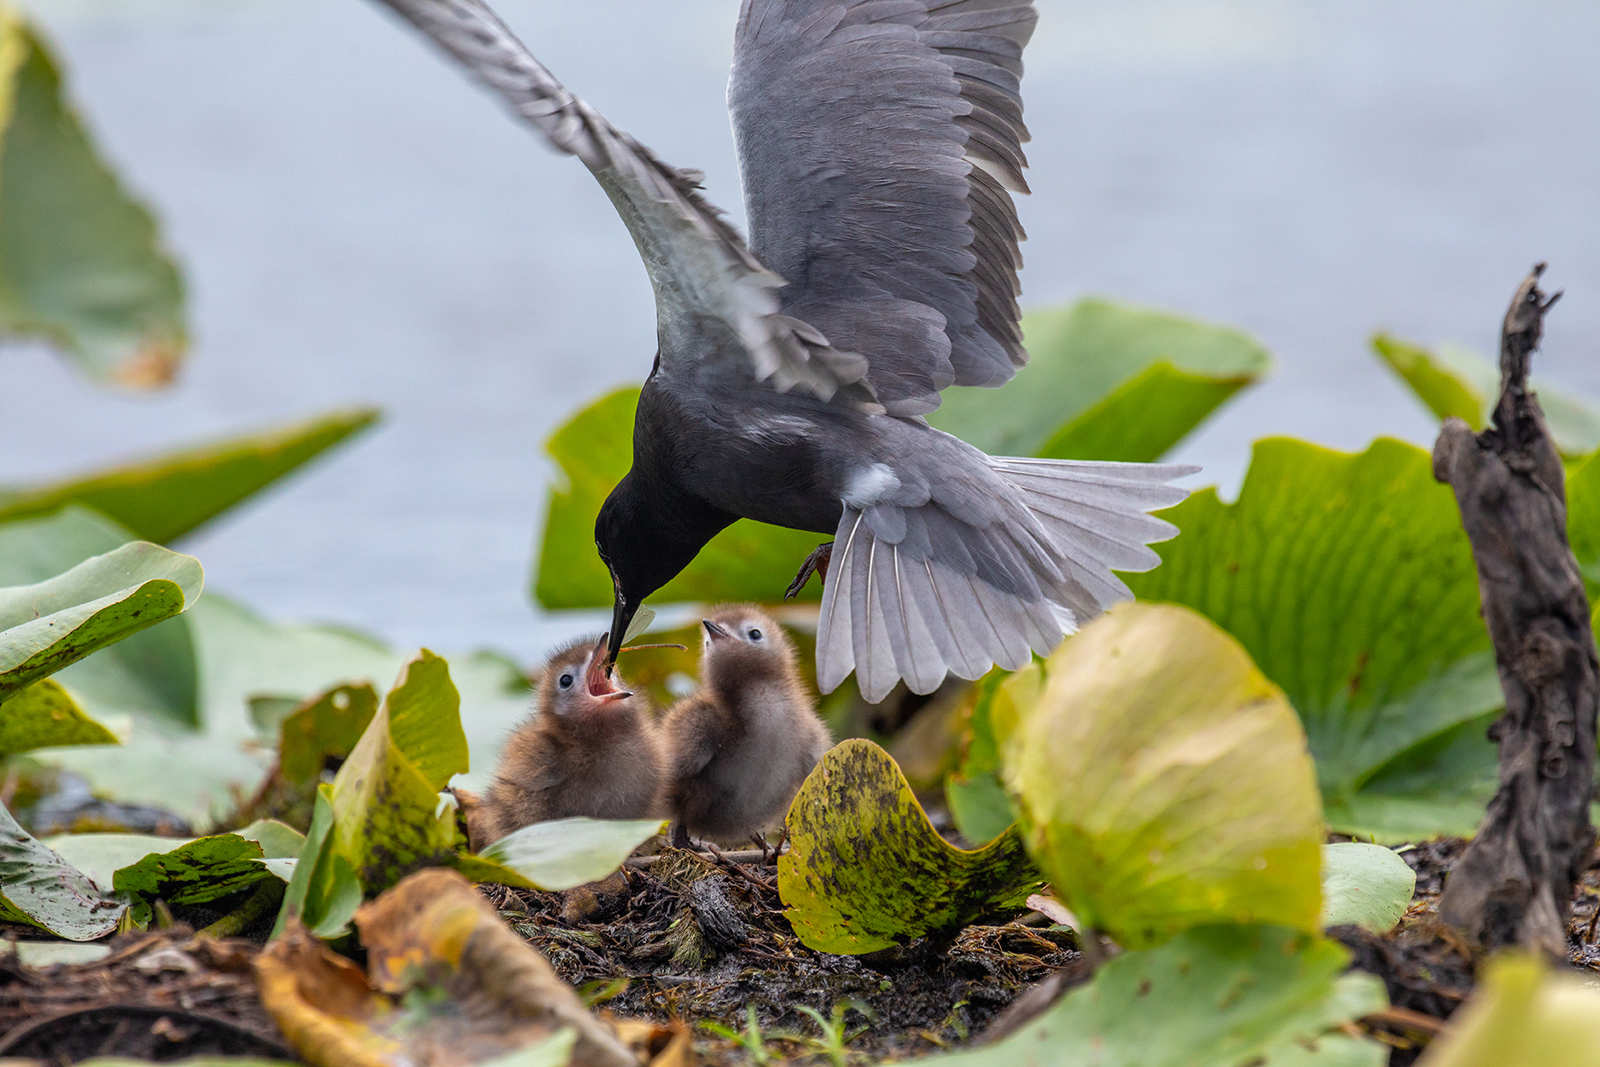 A female black tern feeds two chicks in a nest